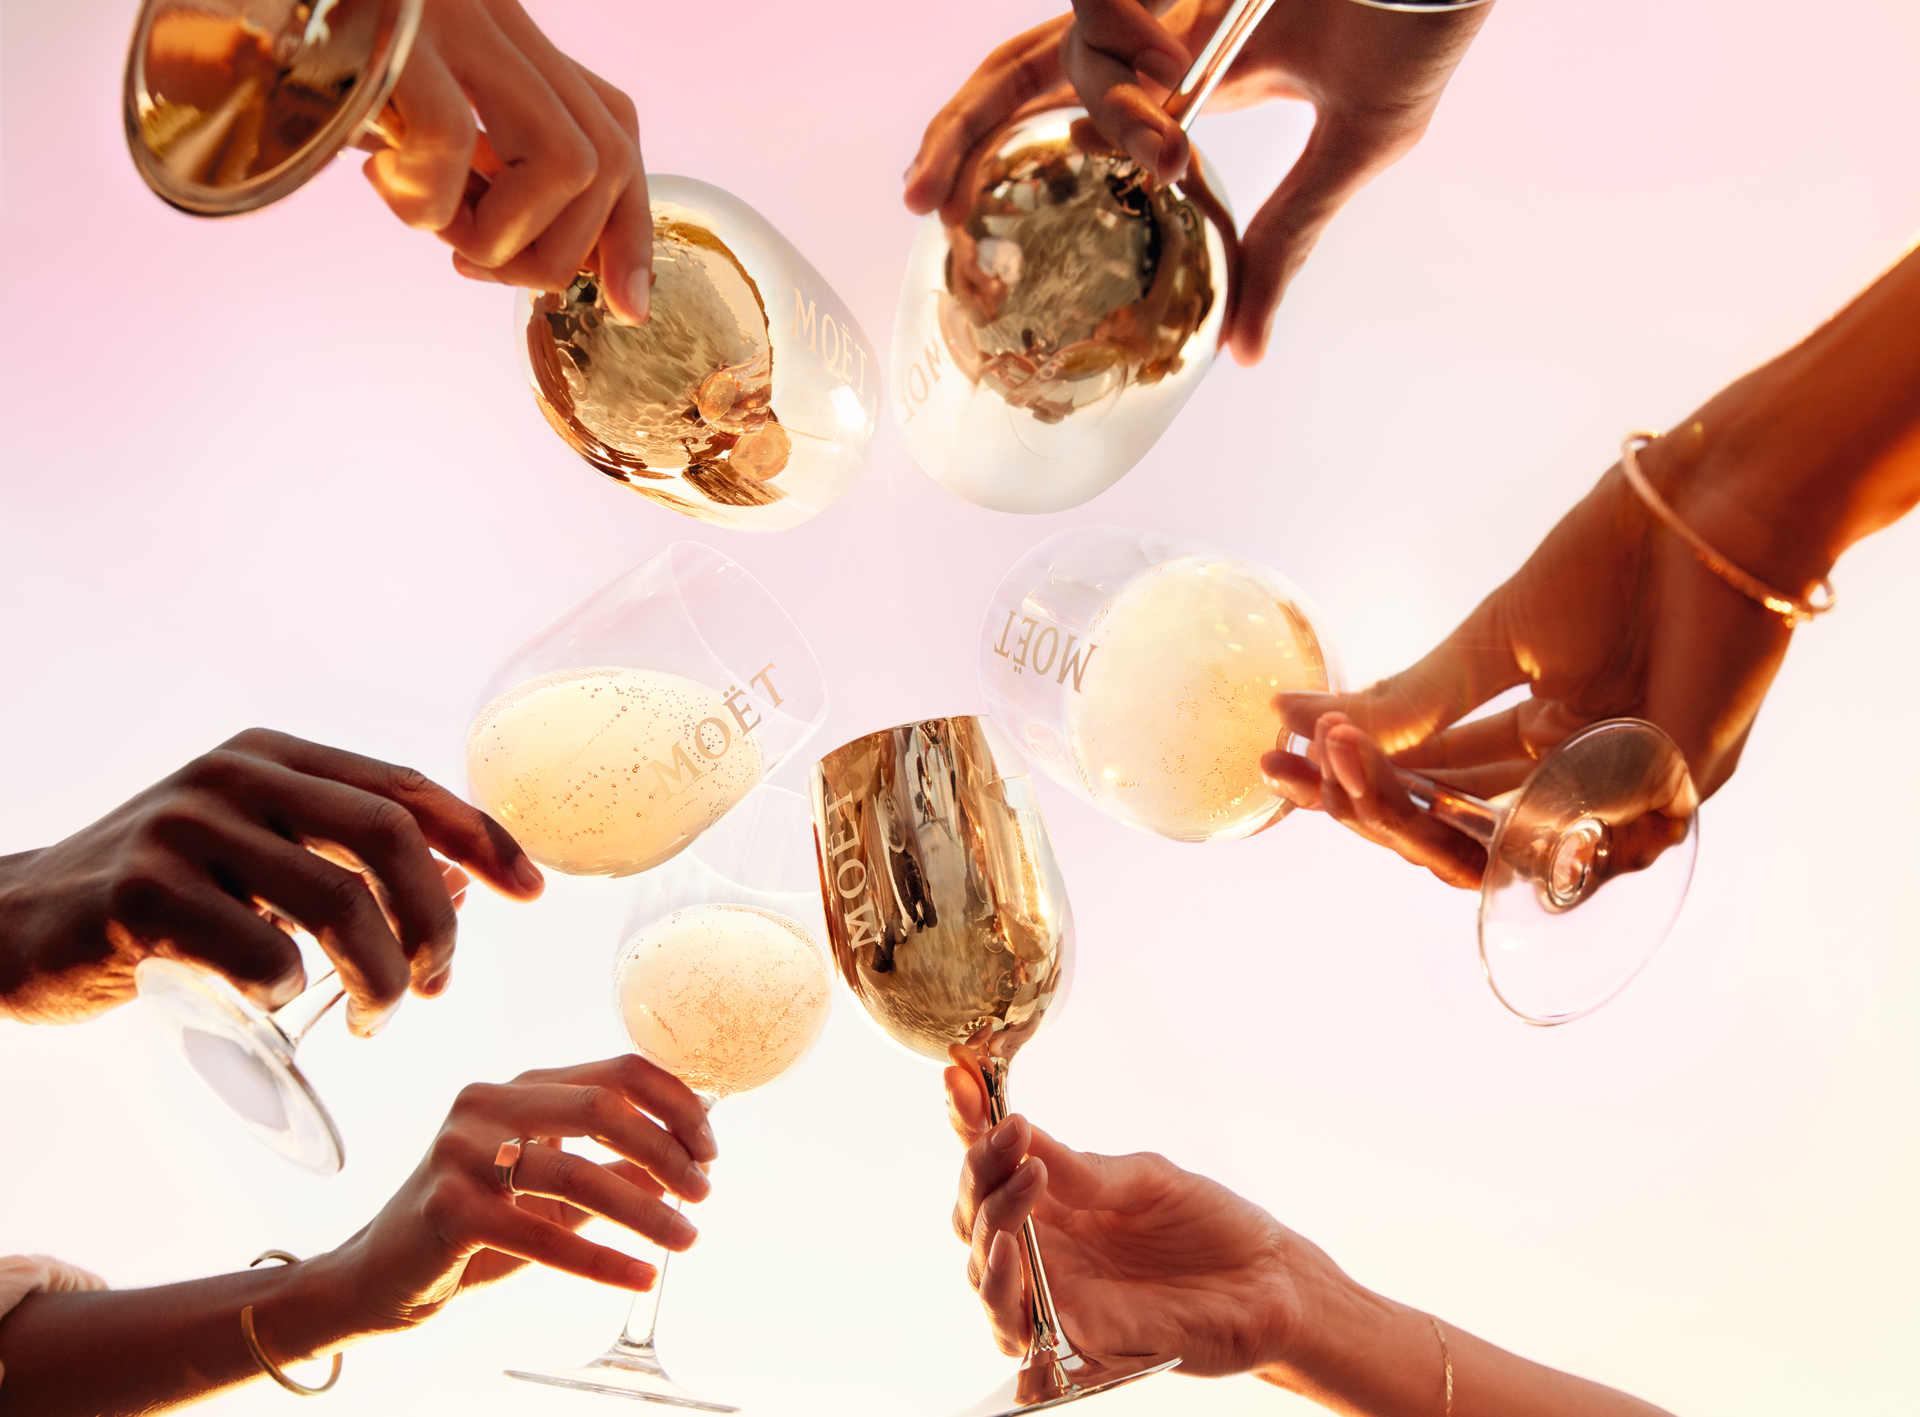 The Moët & Chandon Grand Day is coming soon